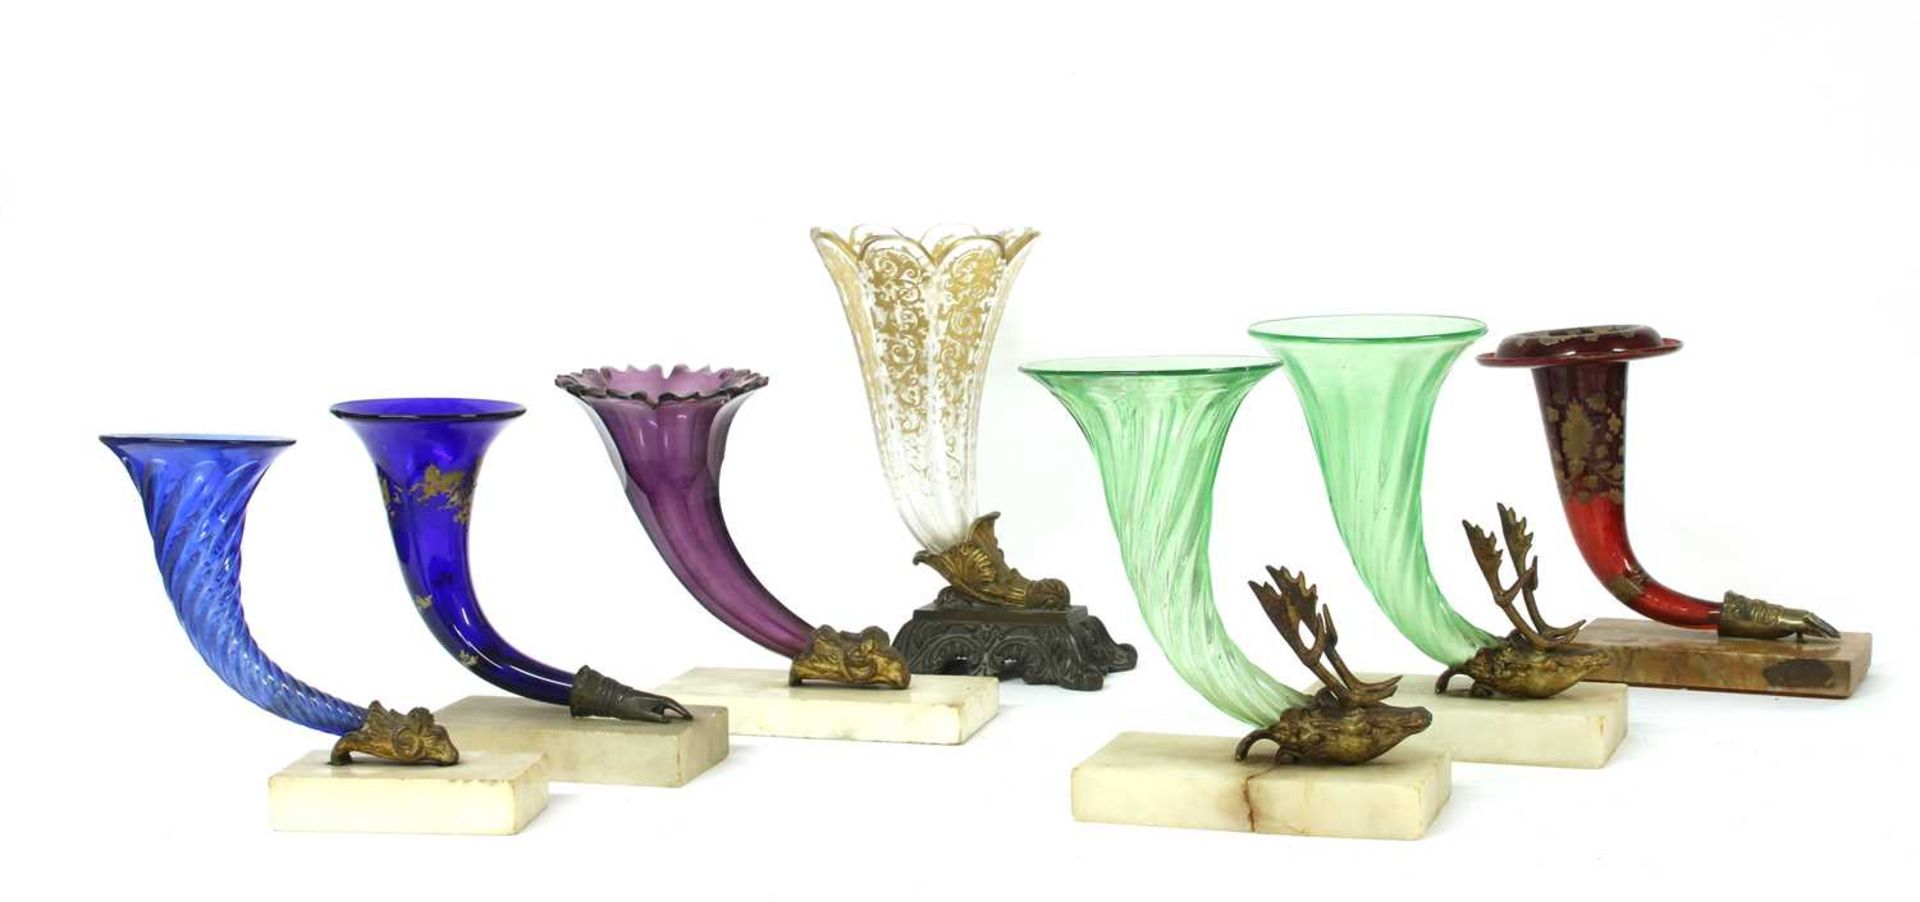 A pair of green glass cornucopia vases, - Image 2 of 2